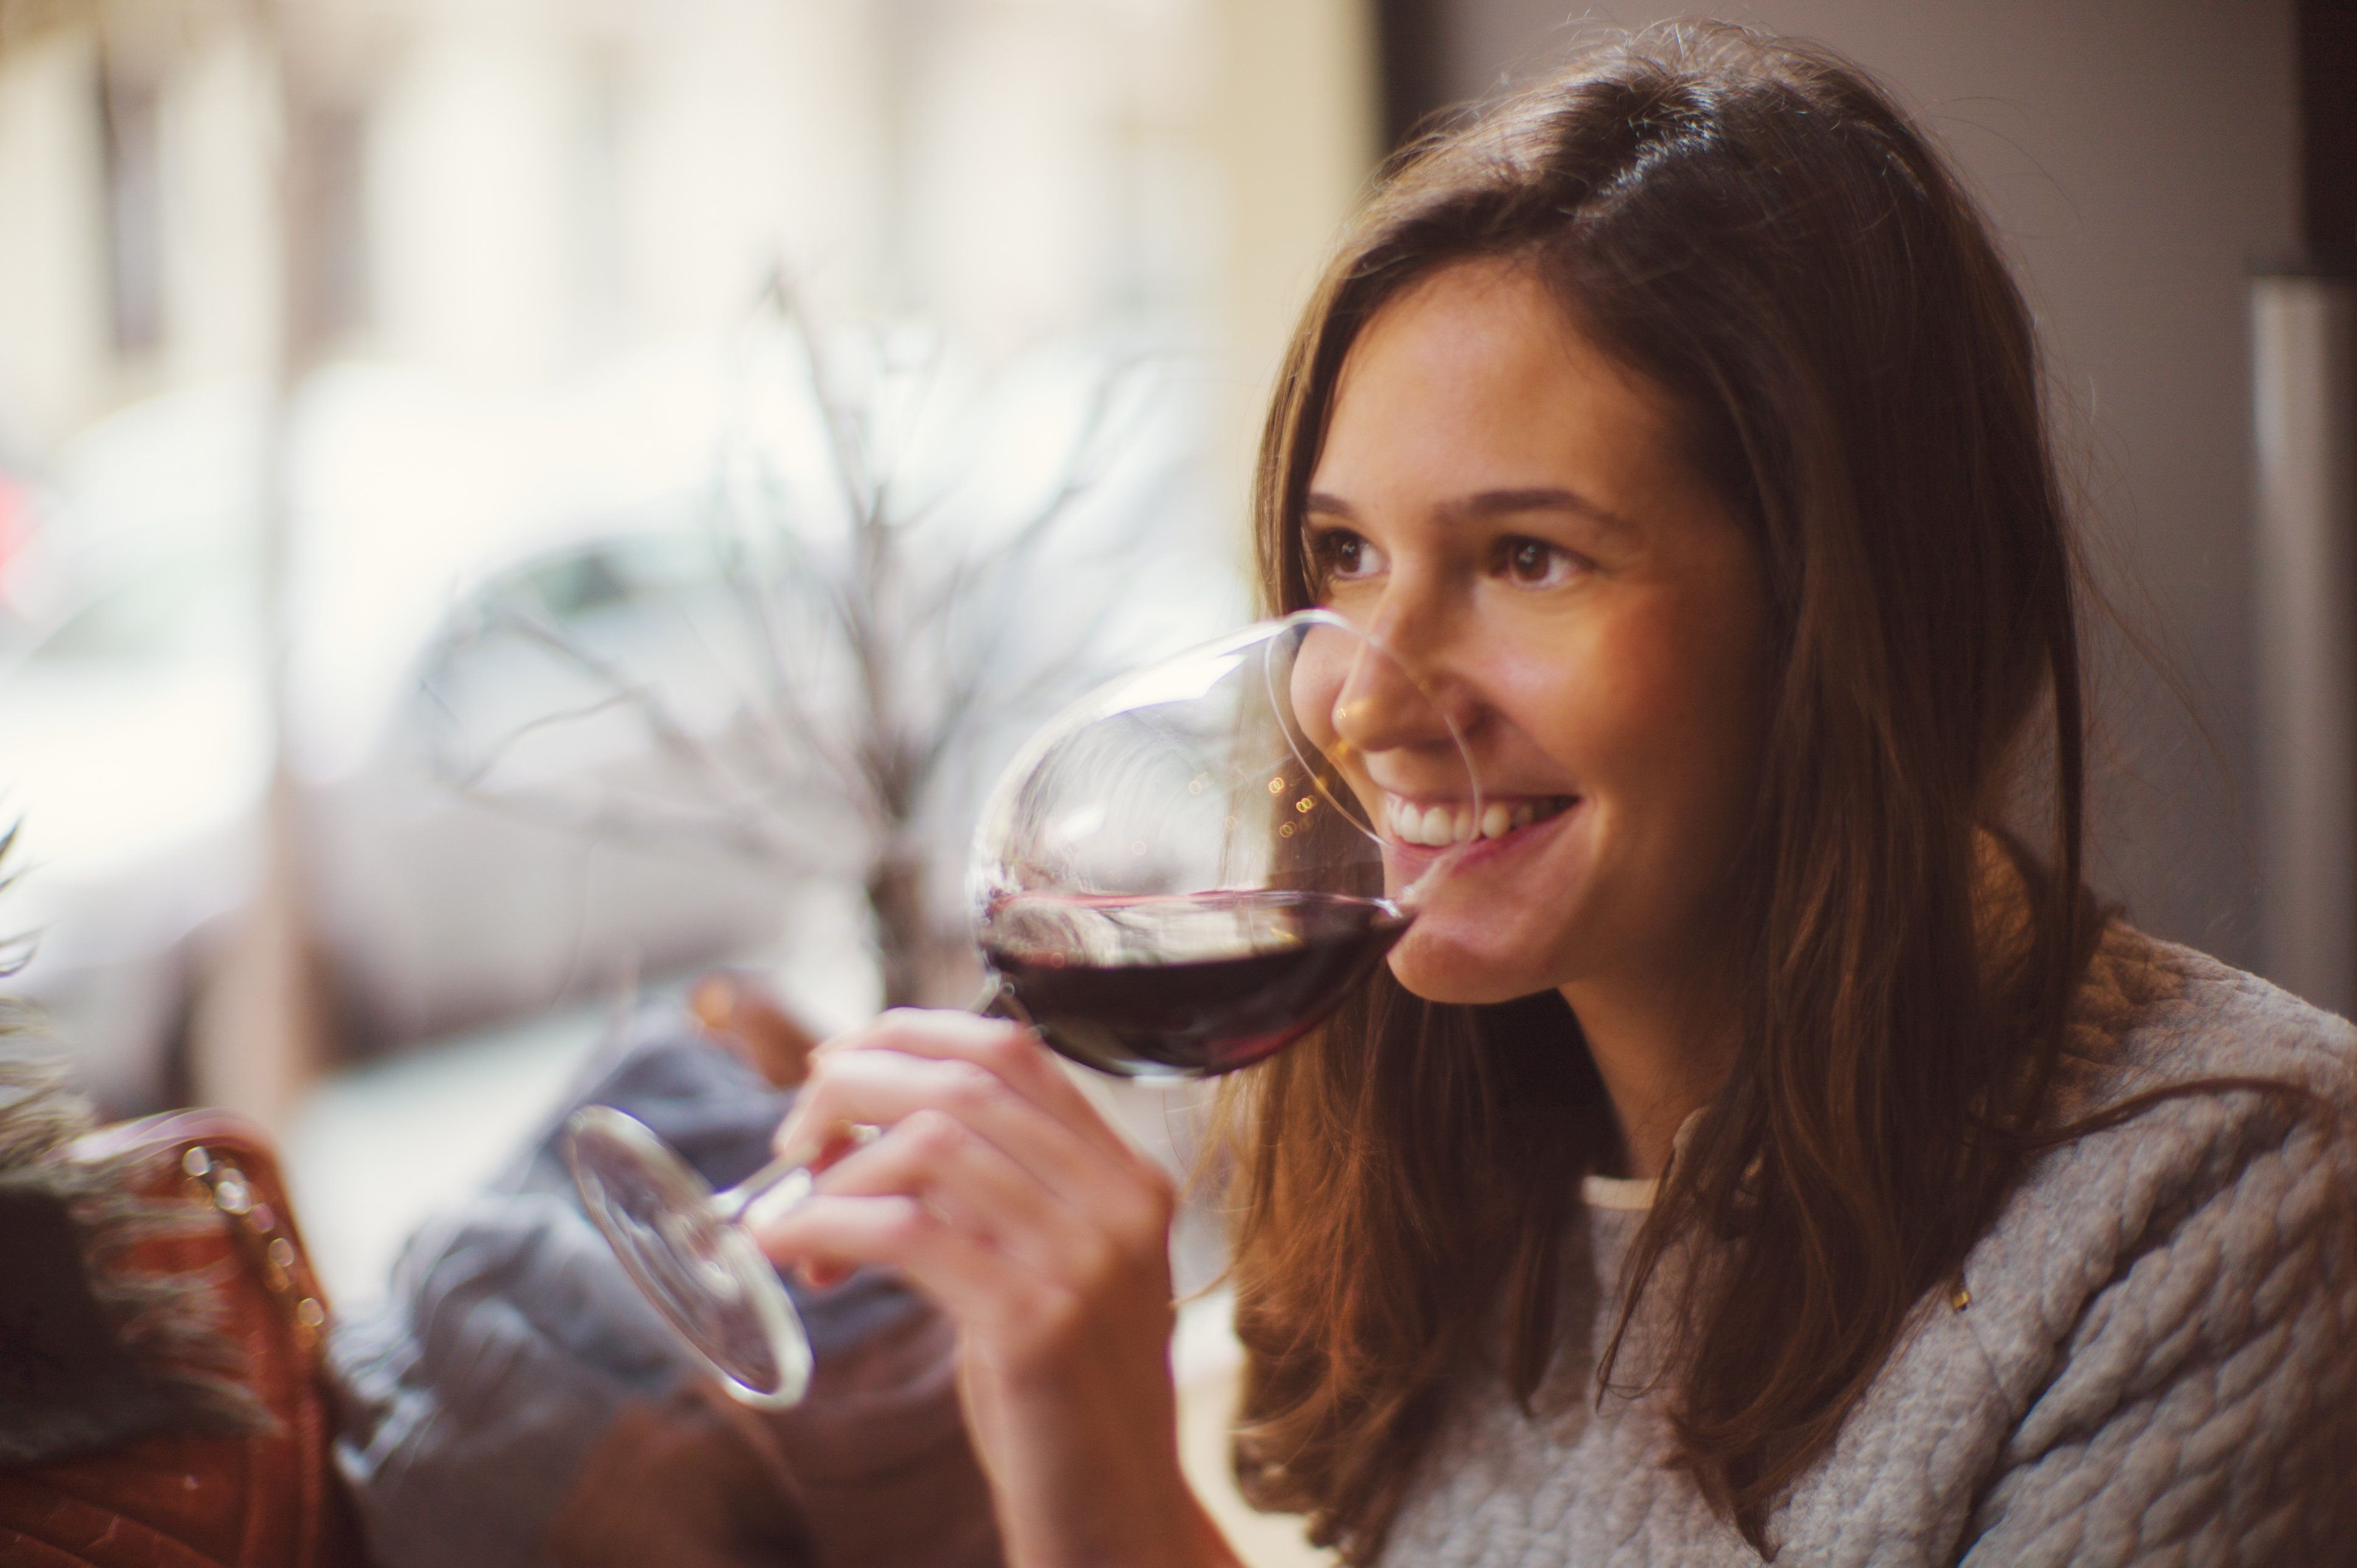 Moderate Drinking Has 'No Greater Health Risk' Than Driving, New Guidelines Will